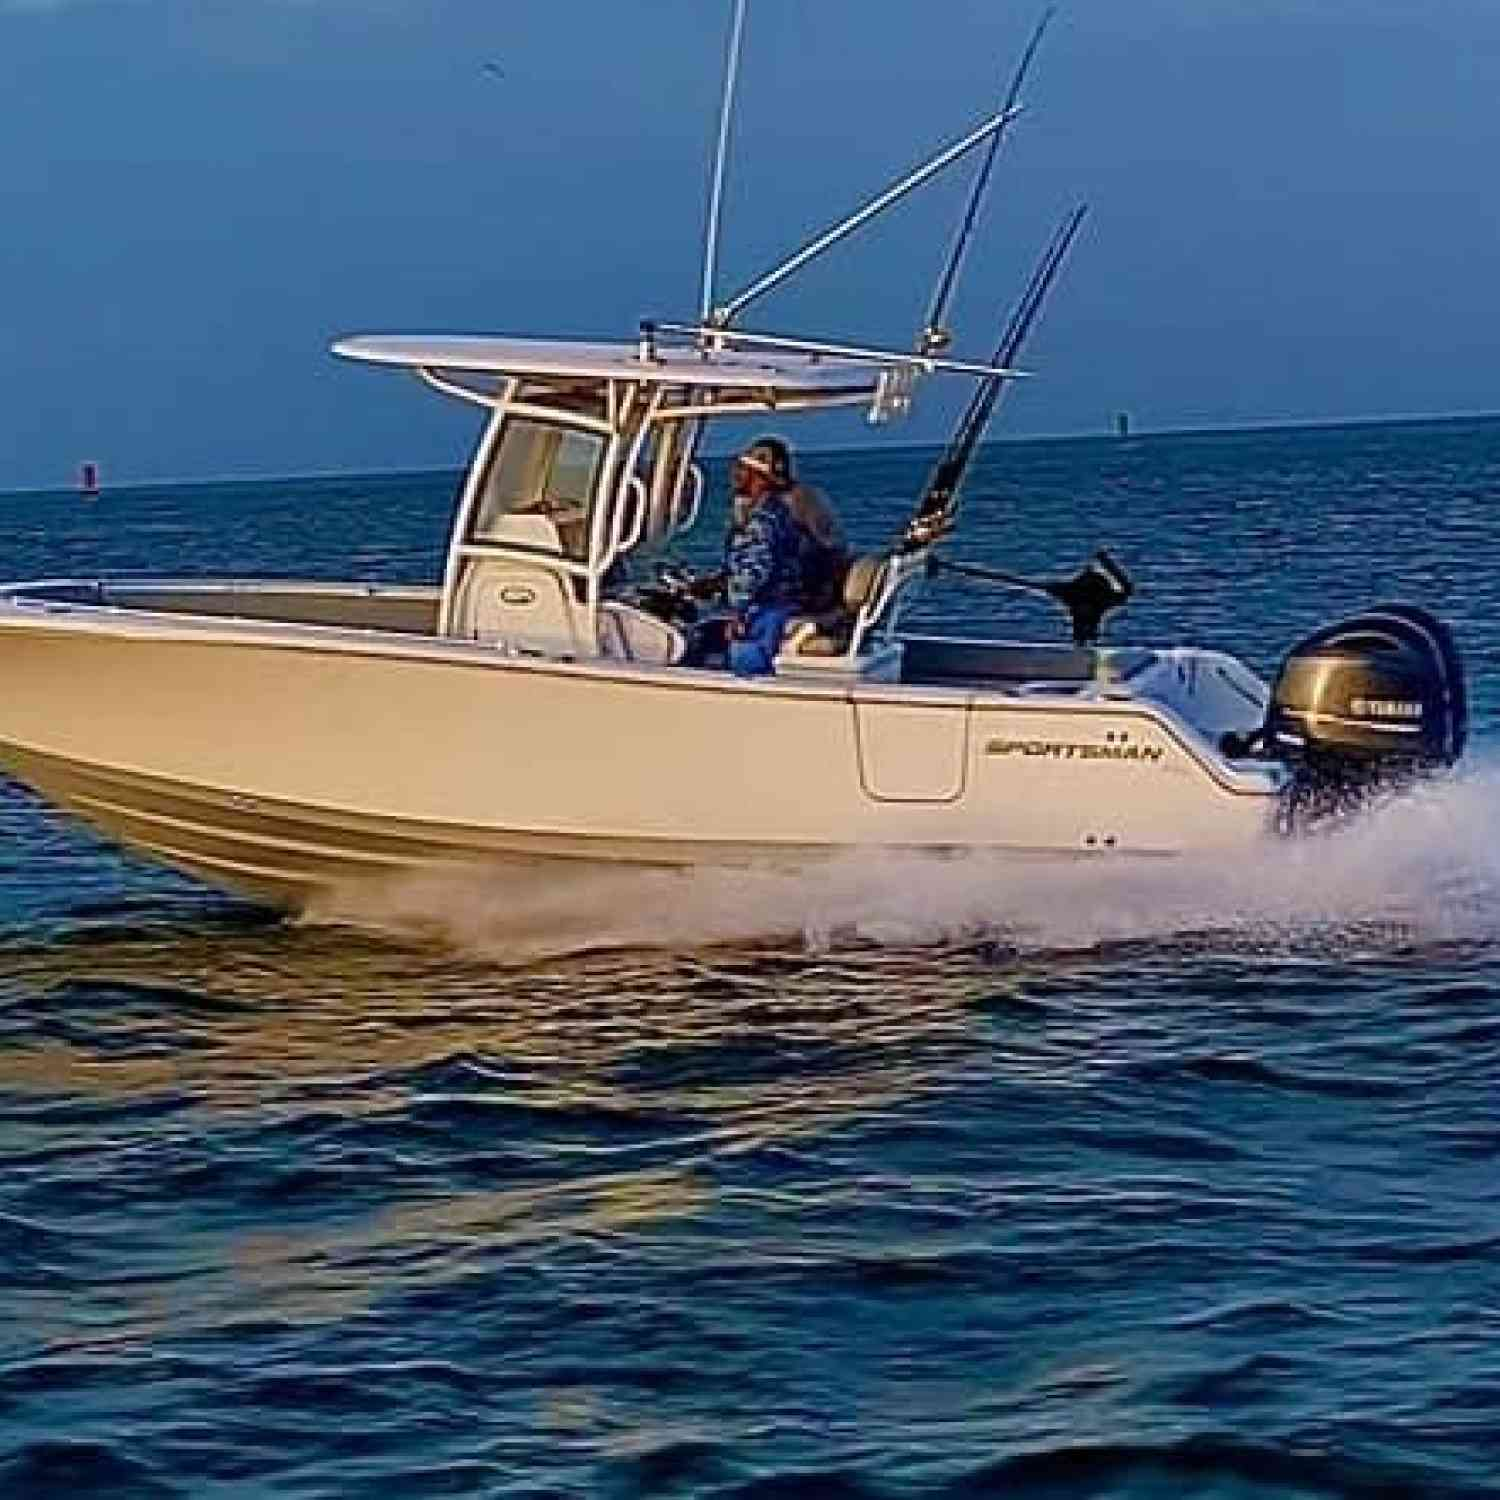 Title: King mackerel tournament - On board their Sportsman Open 252 Center Console - Location: Morehead city NC. Participating in the Photo Contest #SportsmanFebruary2021